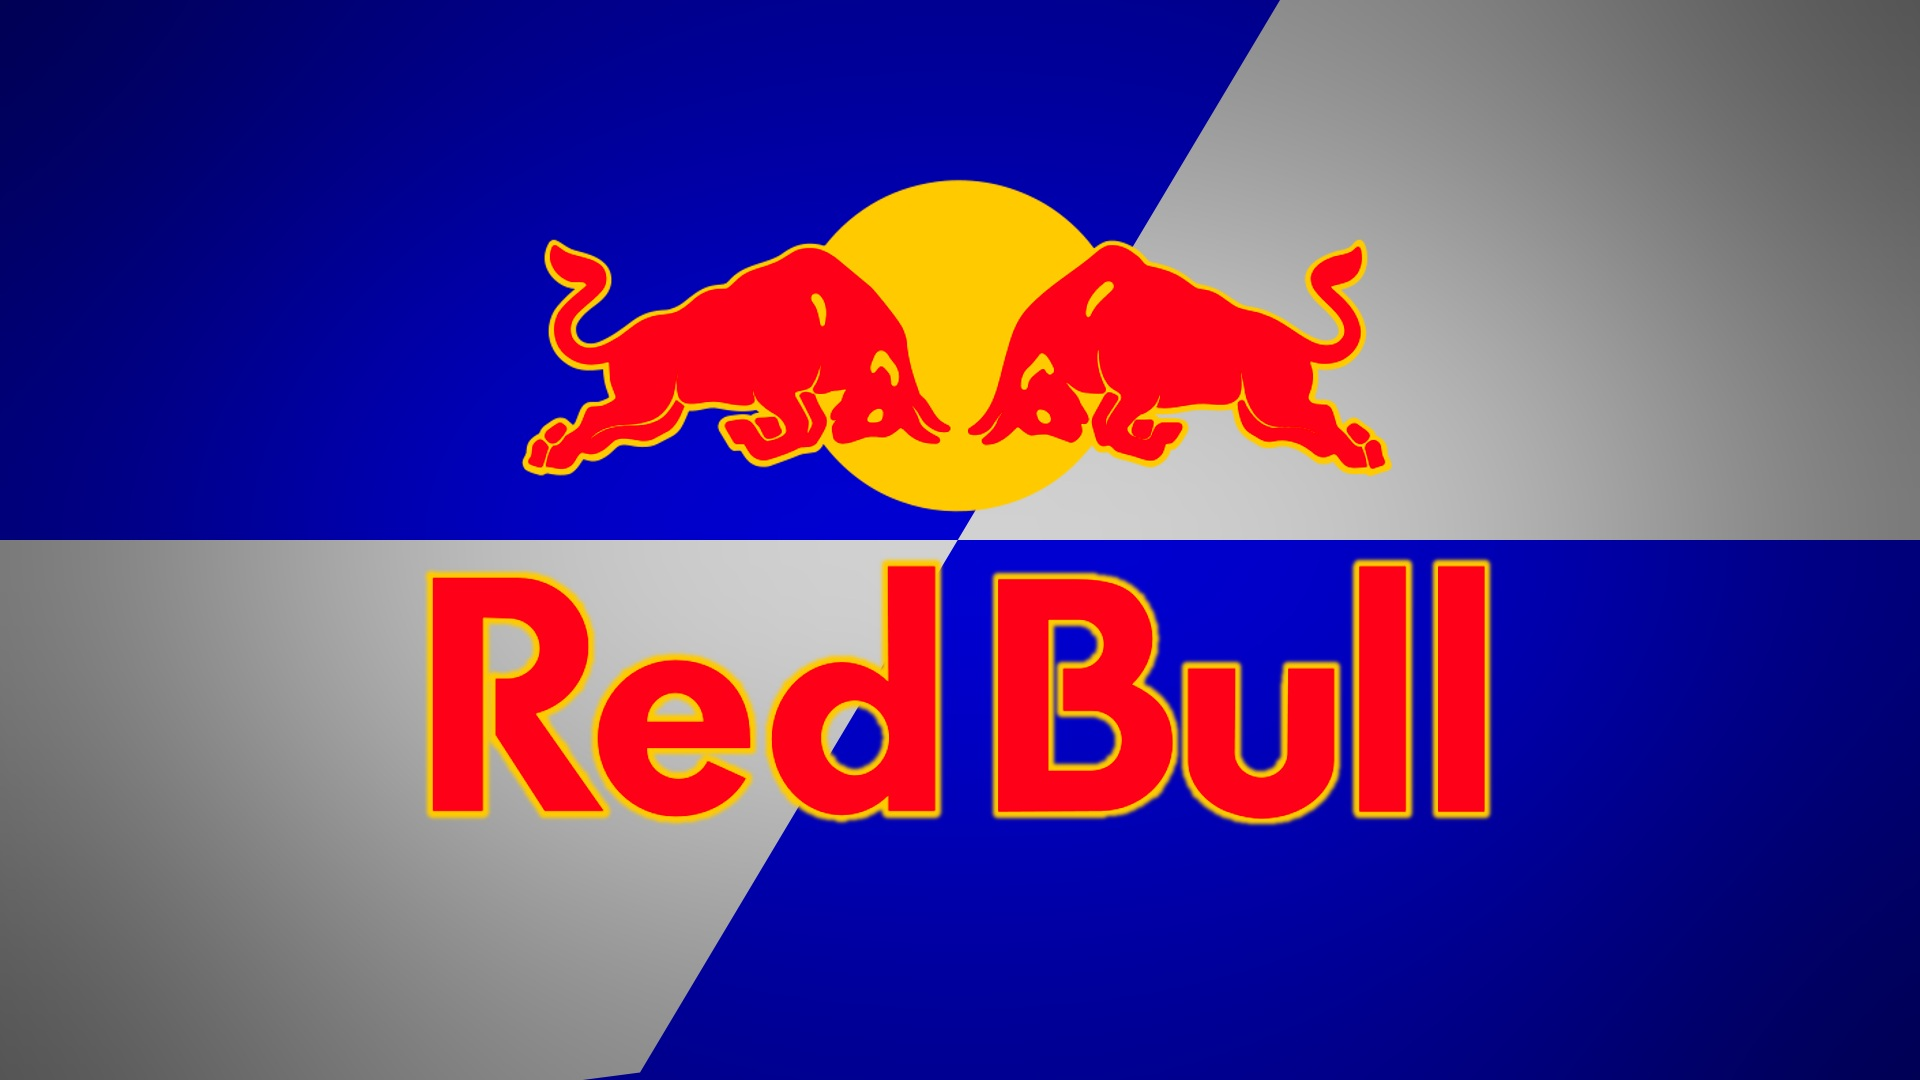 Red Bull clipart rad Redbull and time SUPER and